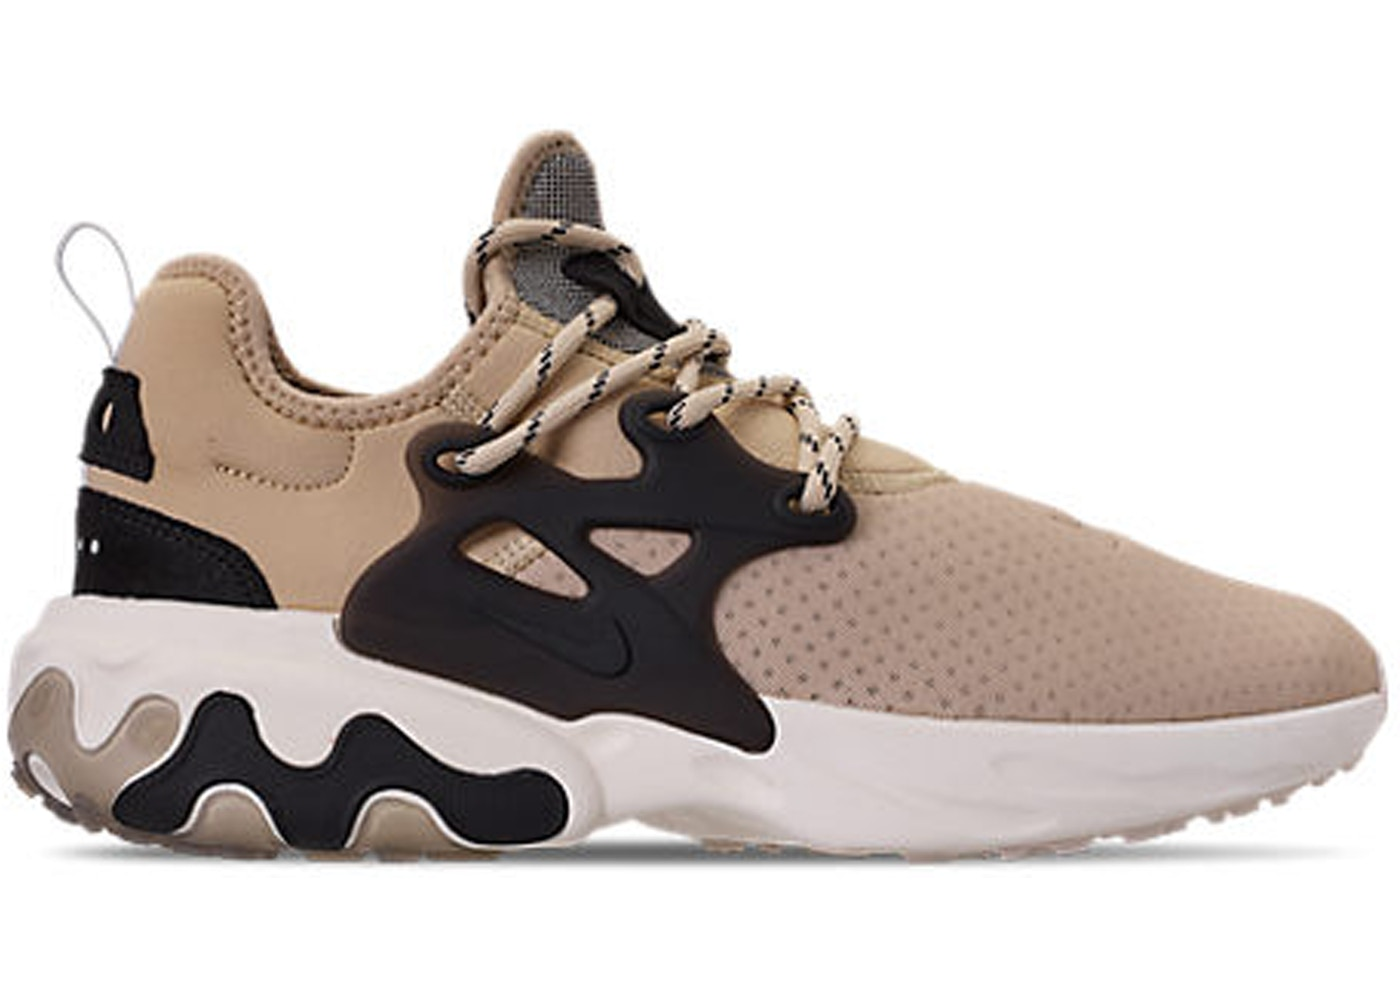 c017c448e8e0c StockX  Buy and Sell Sneakers